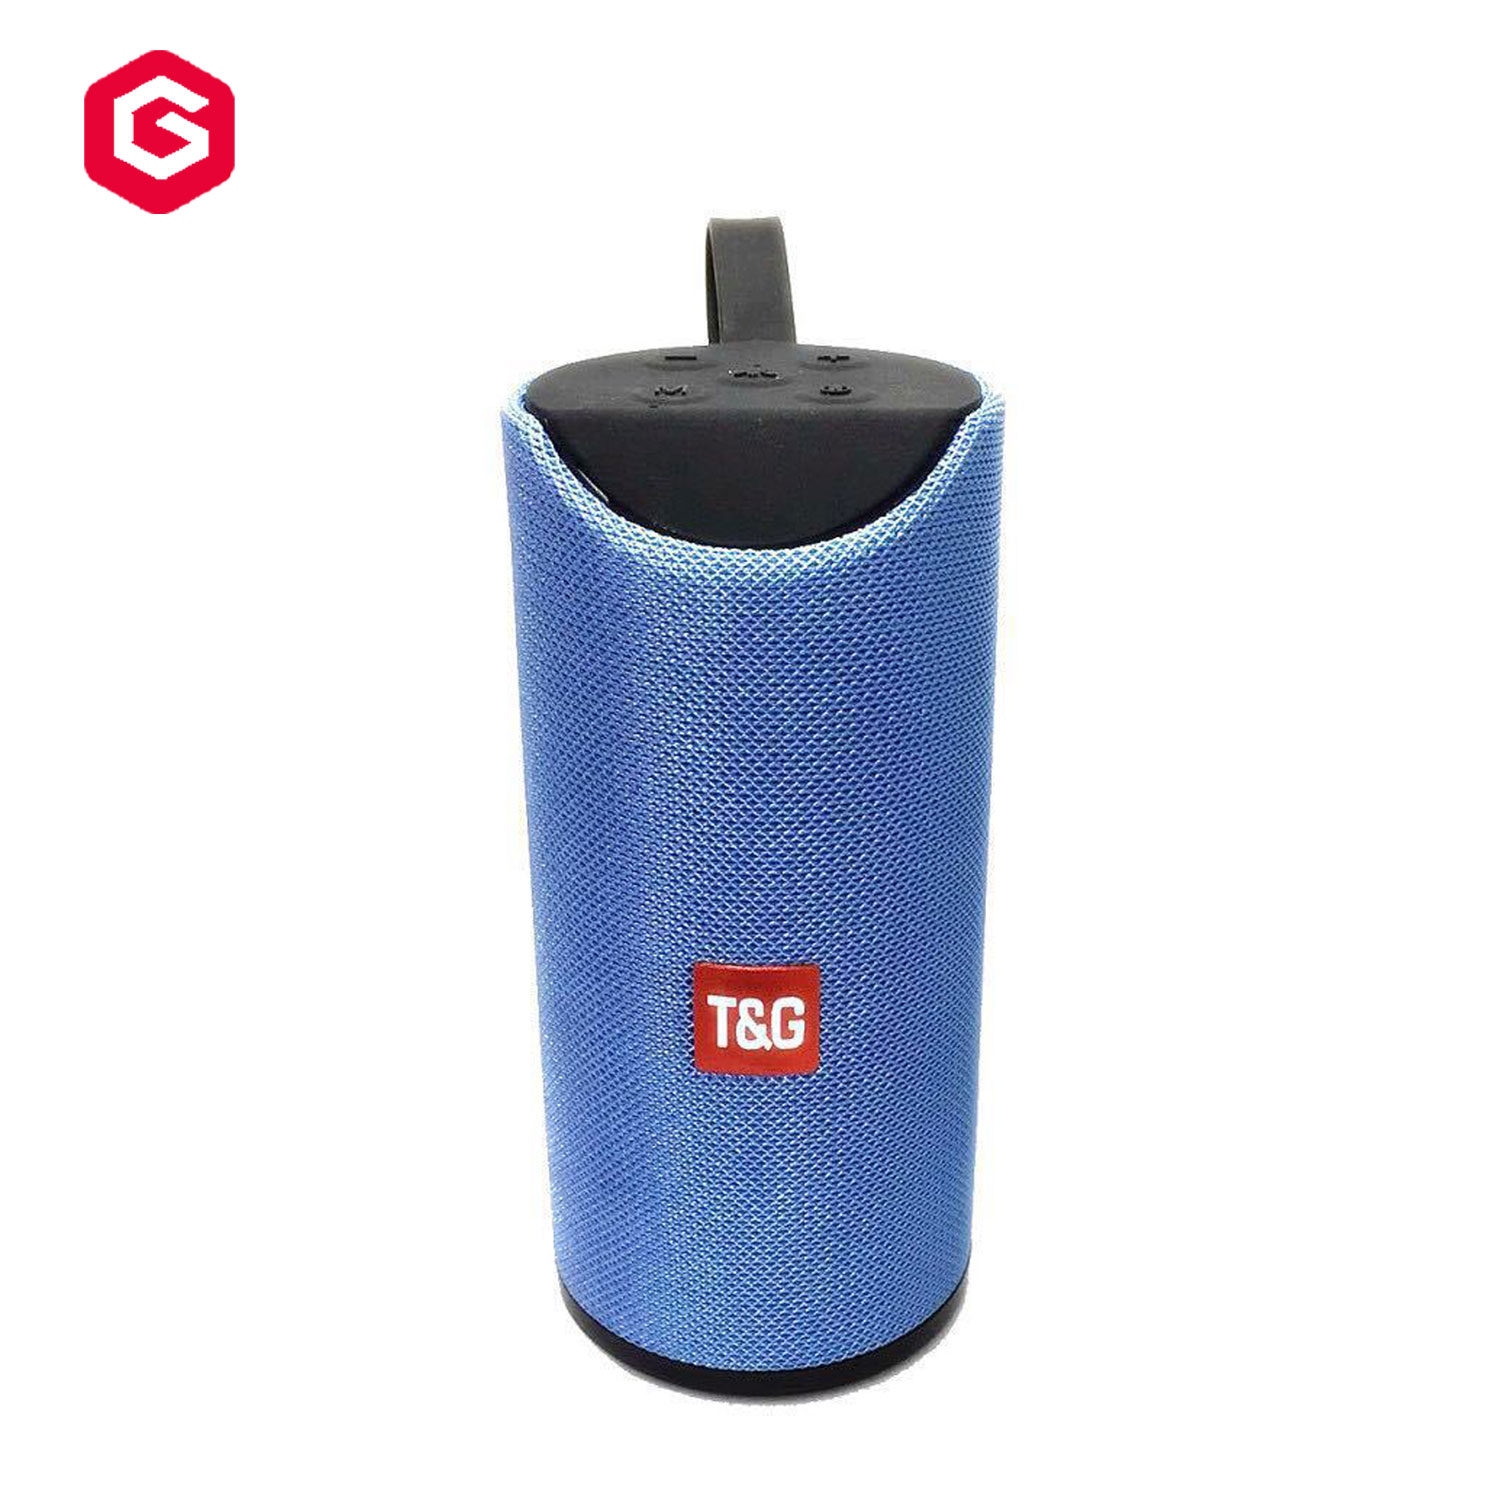 2018 Hot sale TG113 fashion Portable Wireless Fabric Outdoor BT Speaker